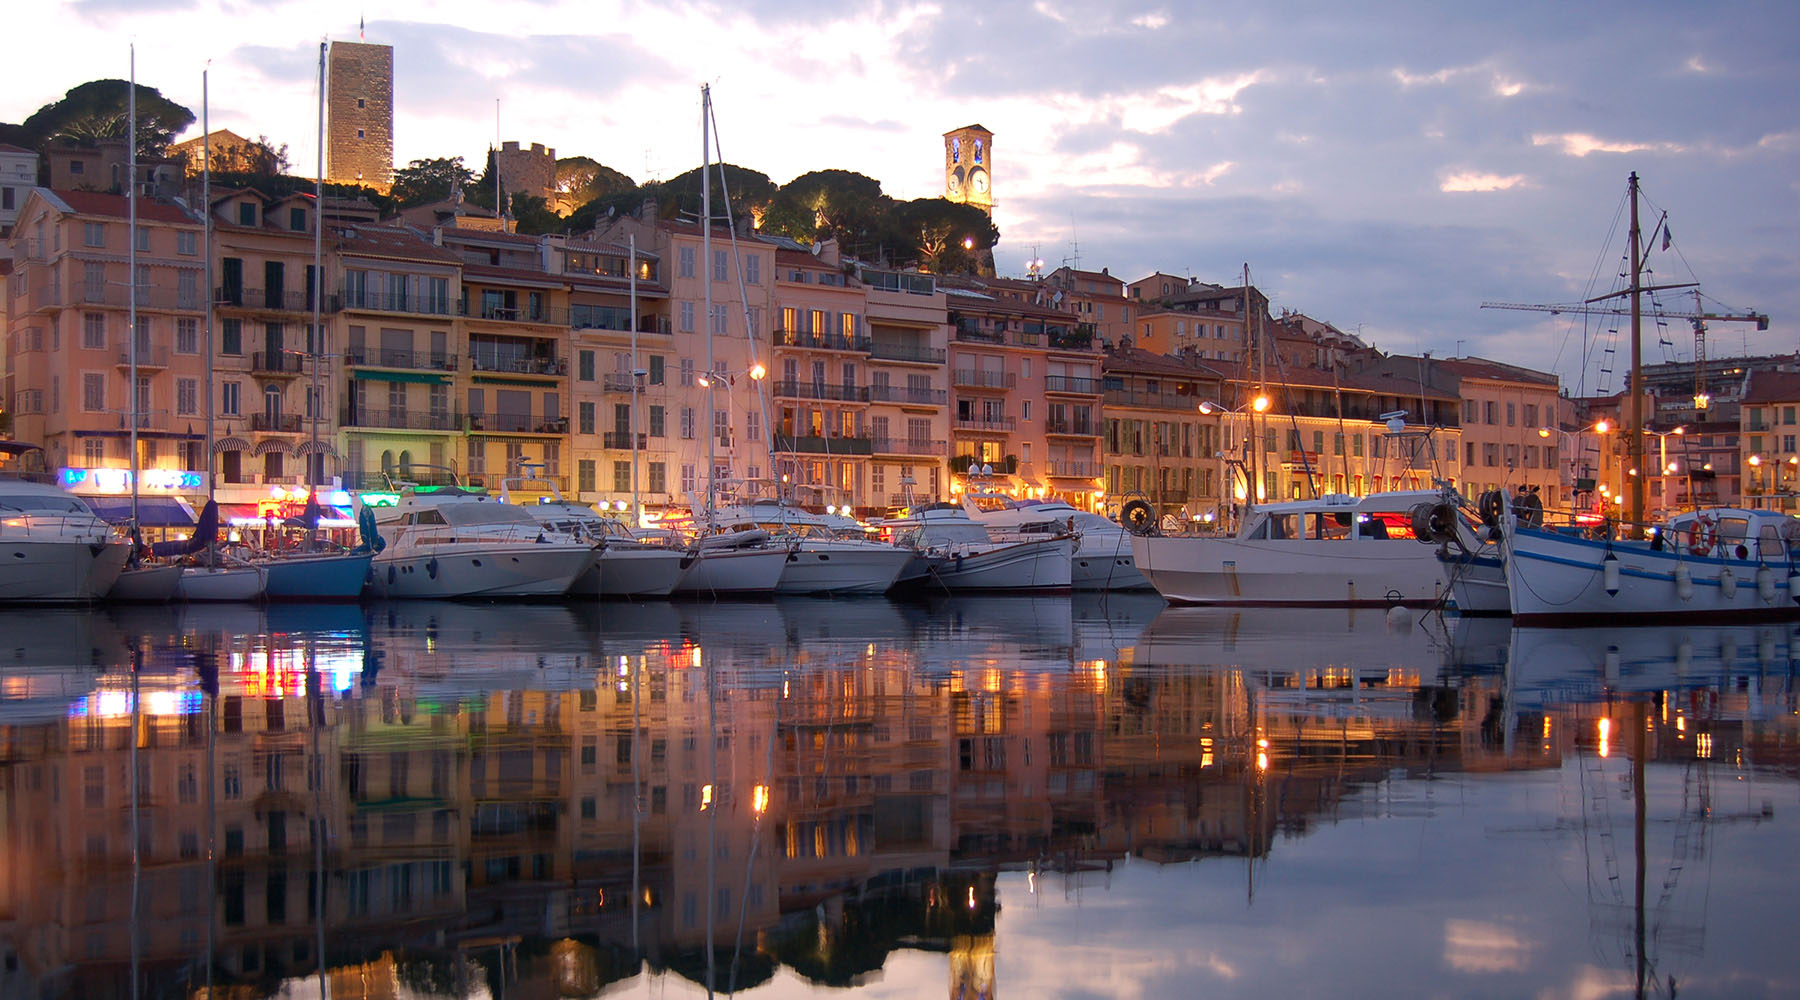 On the Grand Prix & Cannes leg of the World Journey, where you can visit the lively Cote d'Azur town of Antibes.